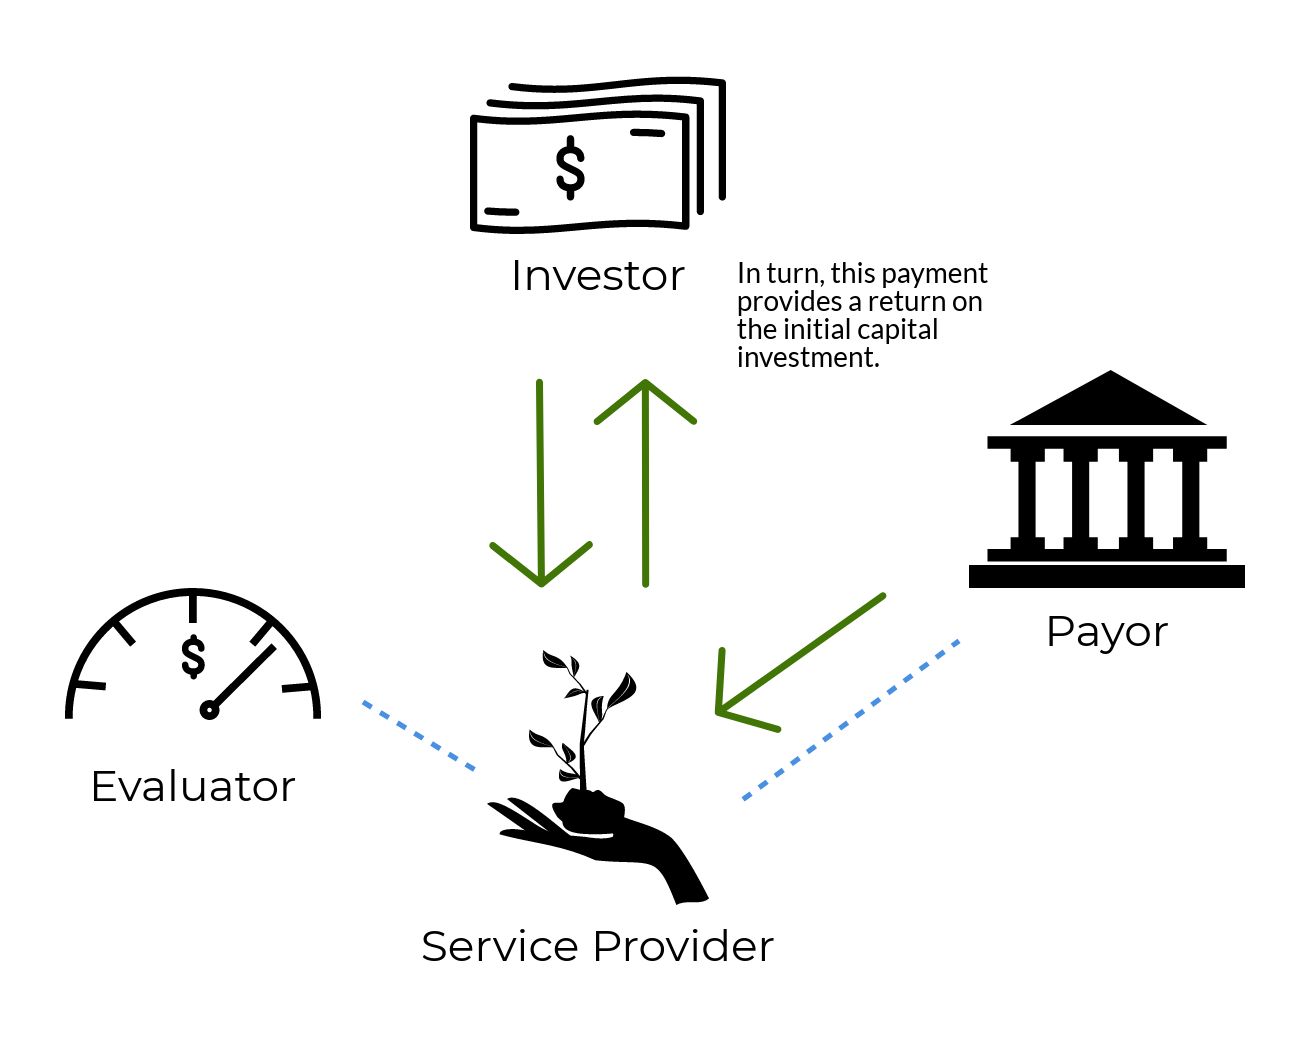 Step 5: In turn, this payment provides a return on the initial capital investment. Graphic courtesy: Environmental Incentives